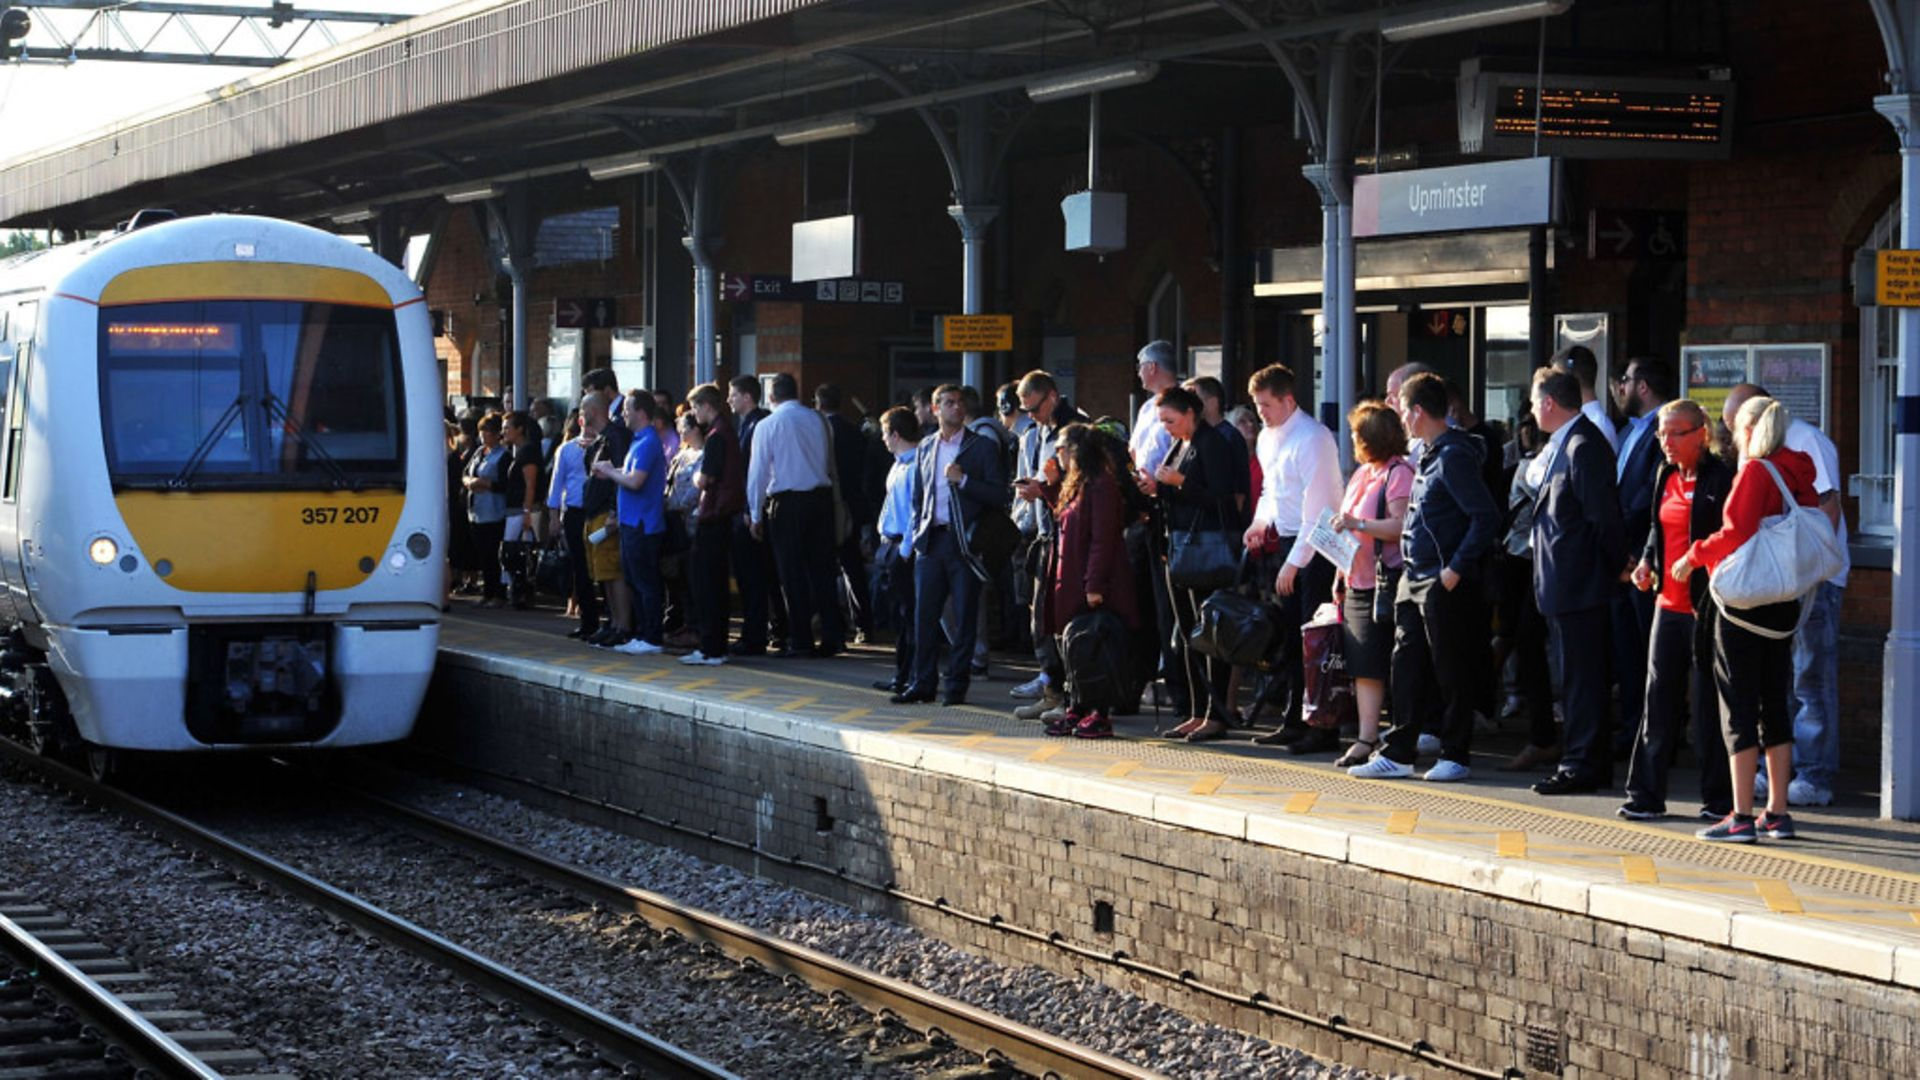 Commuters waiting for a train on the c2c line. - Credit: PA WIRE